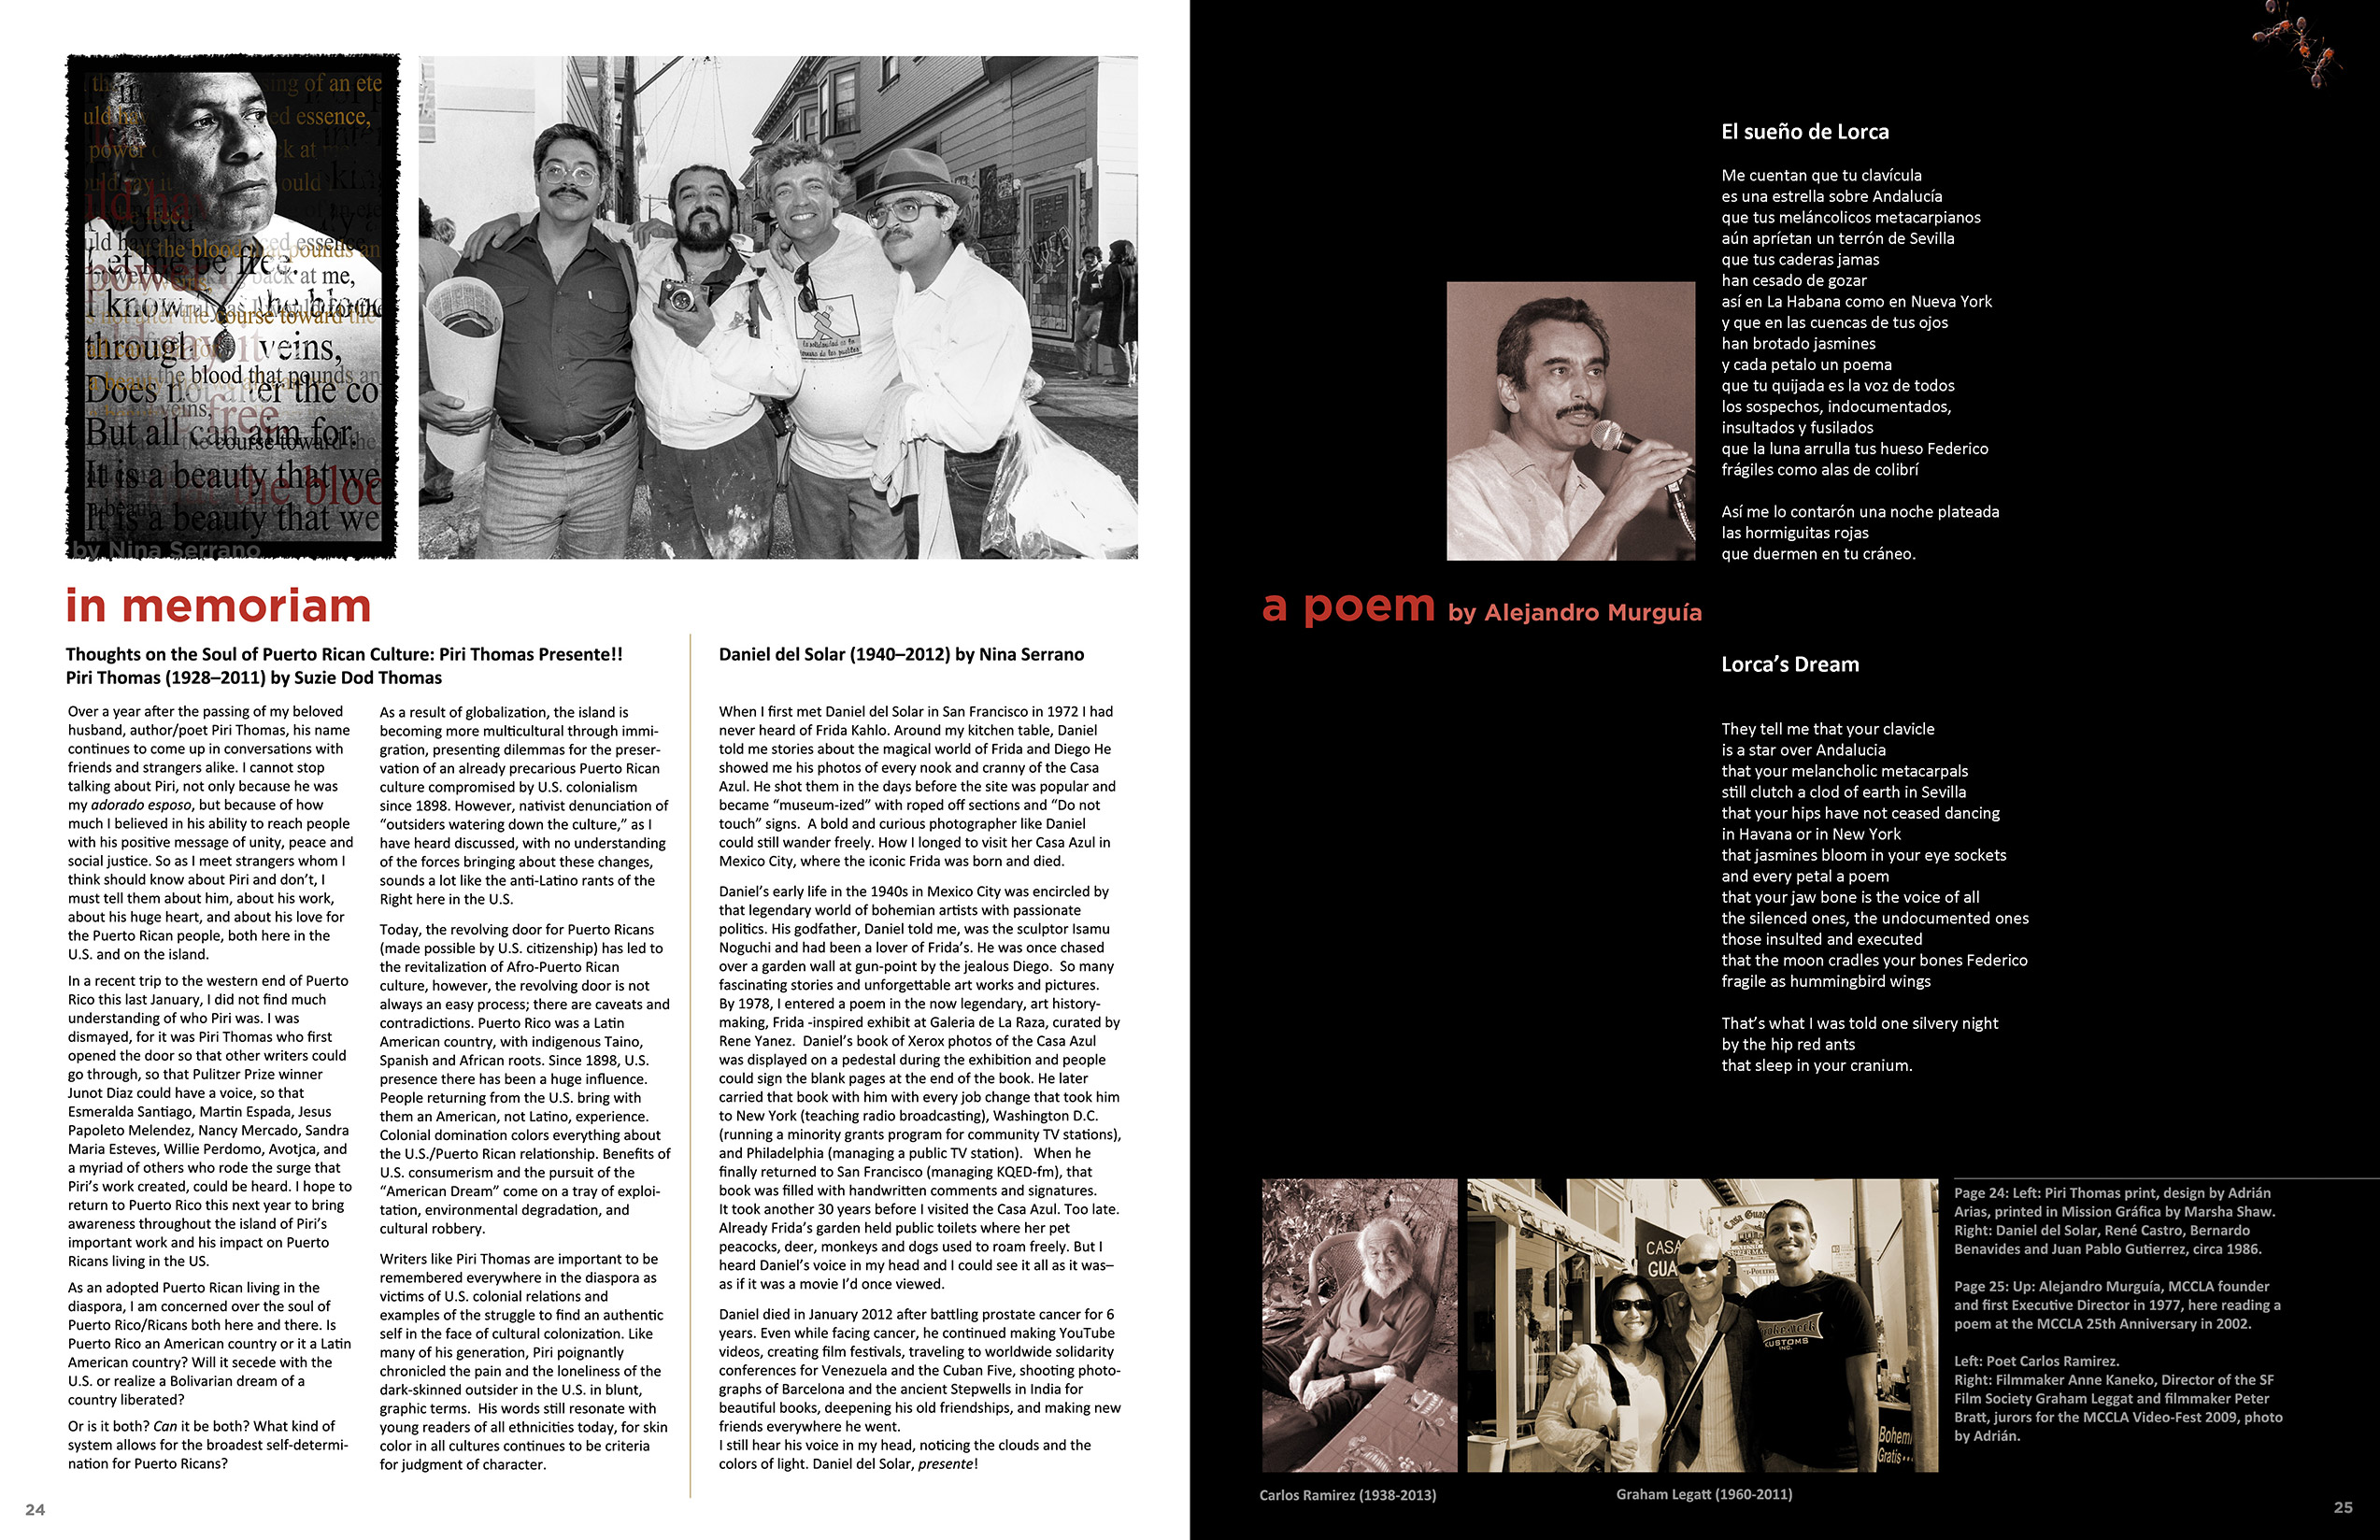 MCCLA Magazine 35th Anniversary Pages 24-25